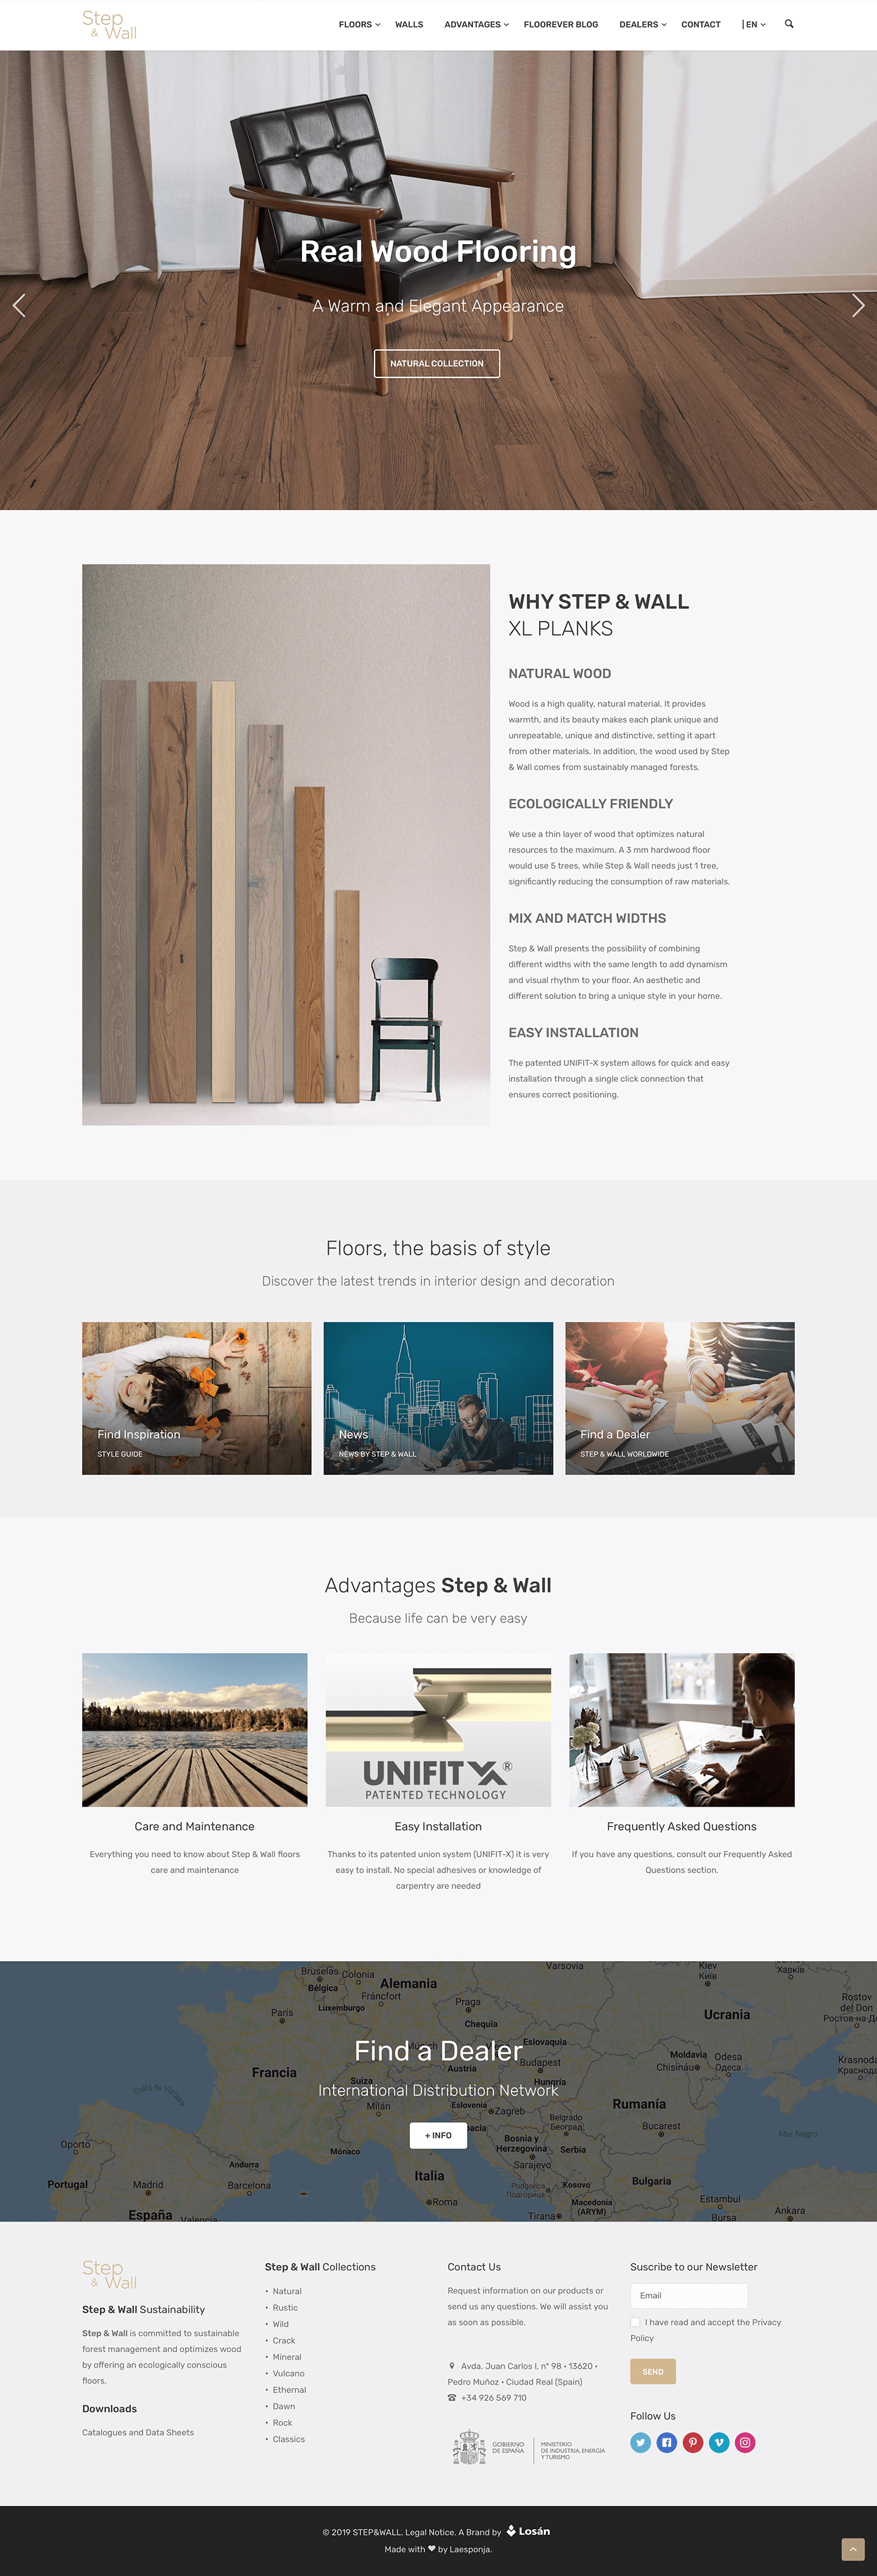 Step&Wall Corporate website : 1